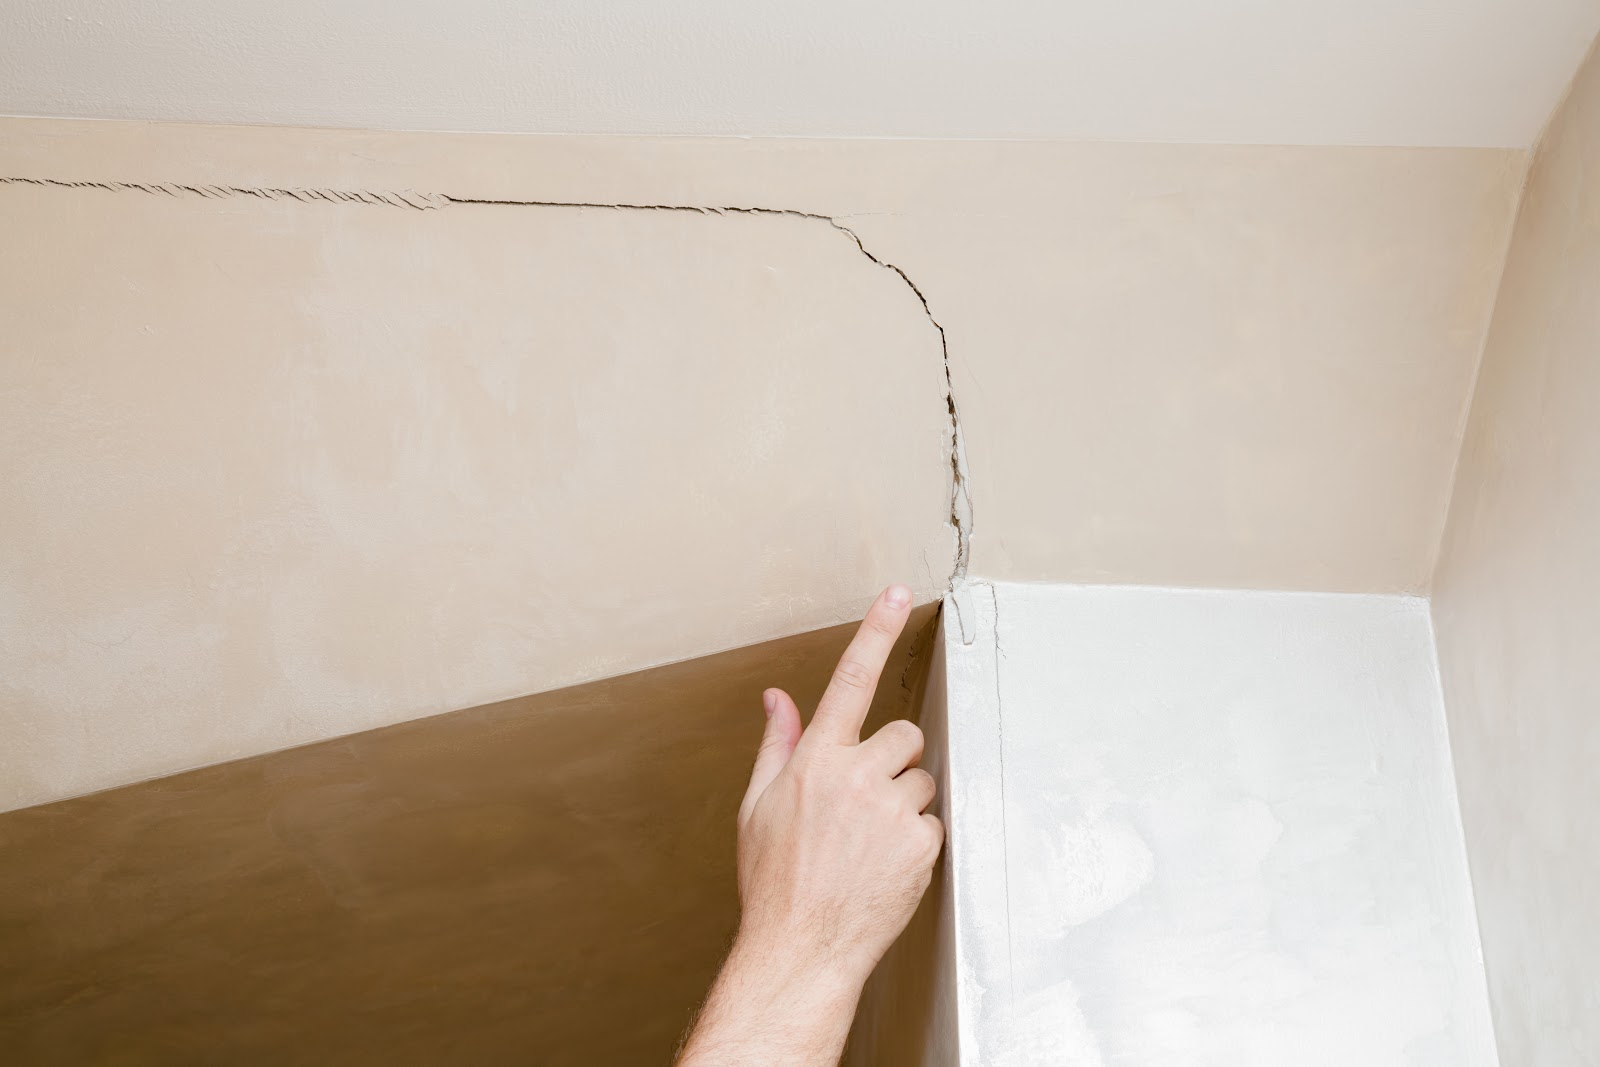 crack in wall from construction defect